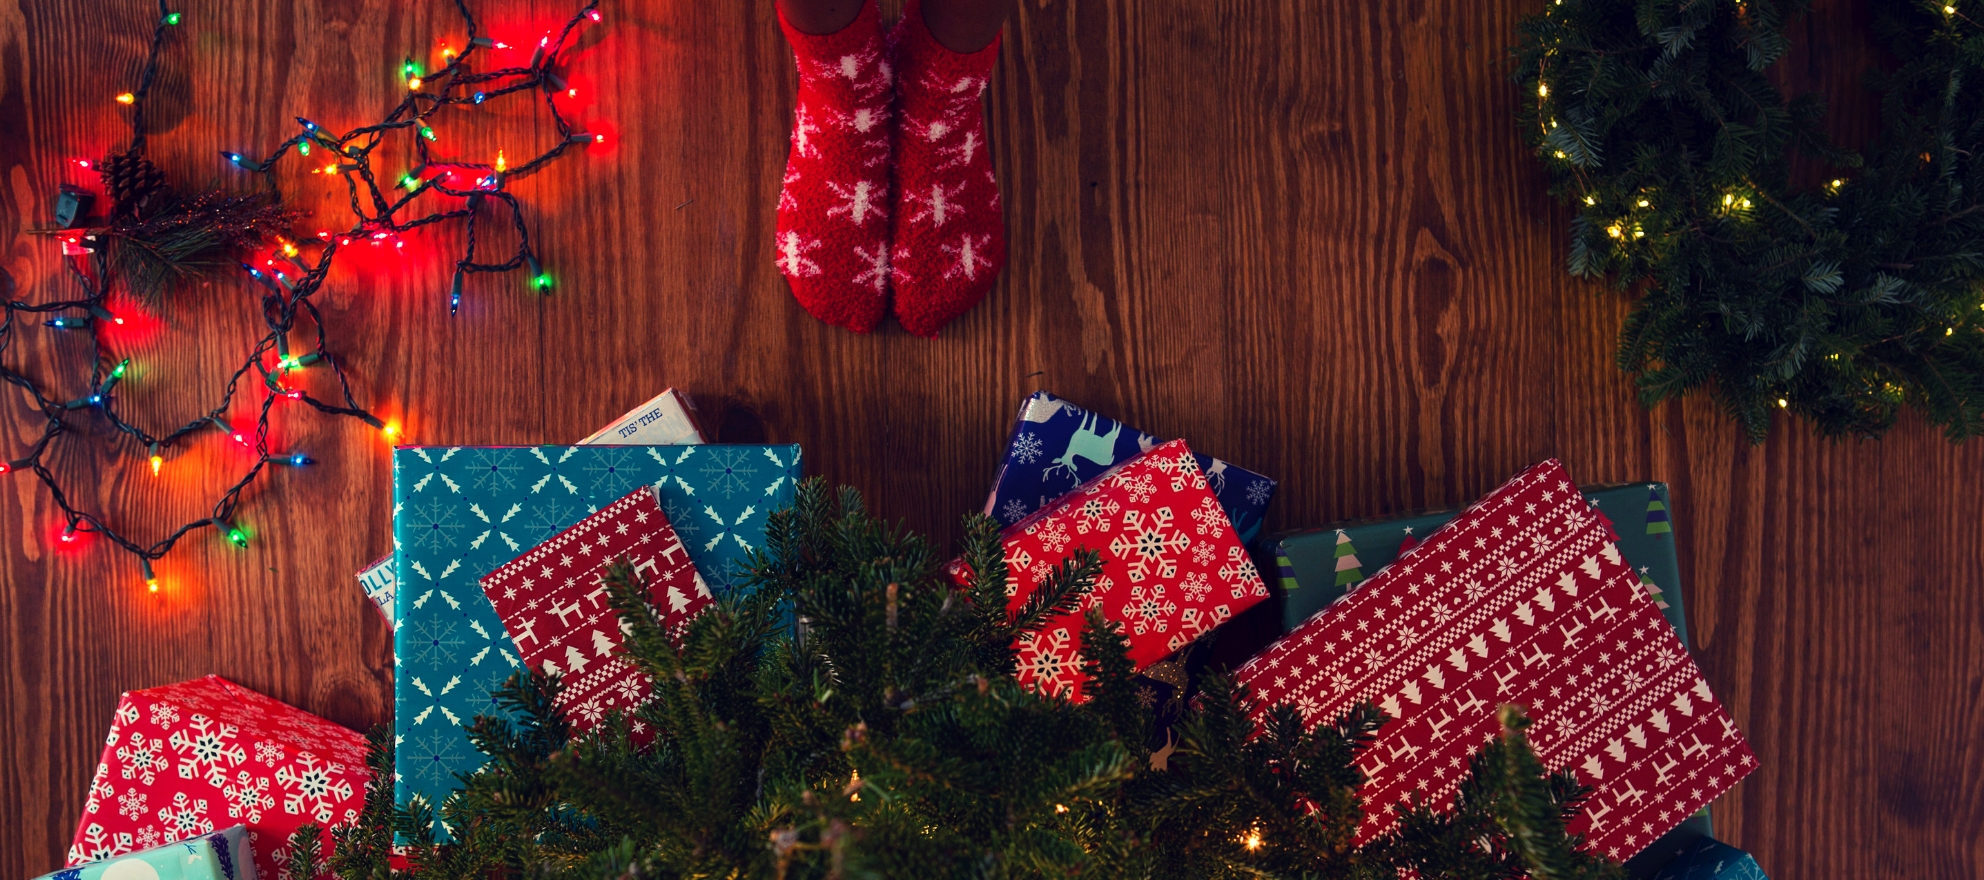 How do you celebrate the holidays? Agents share their favorite traditions